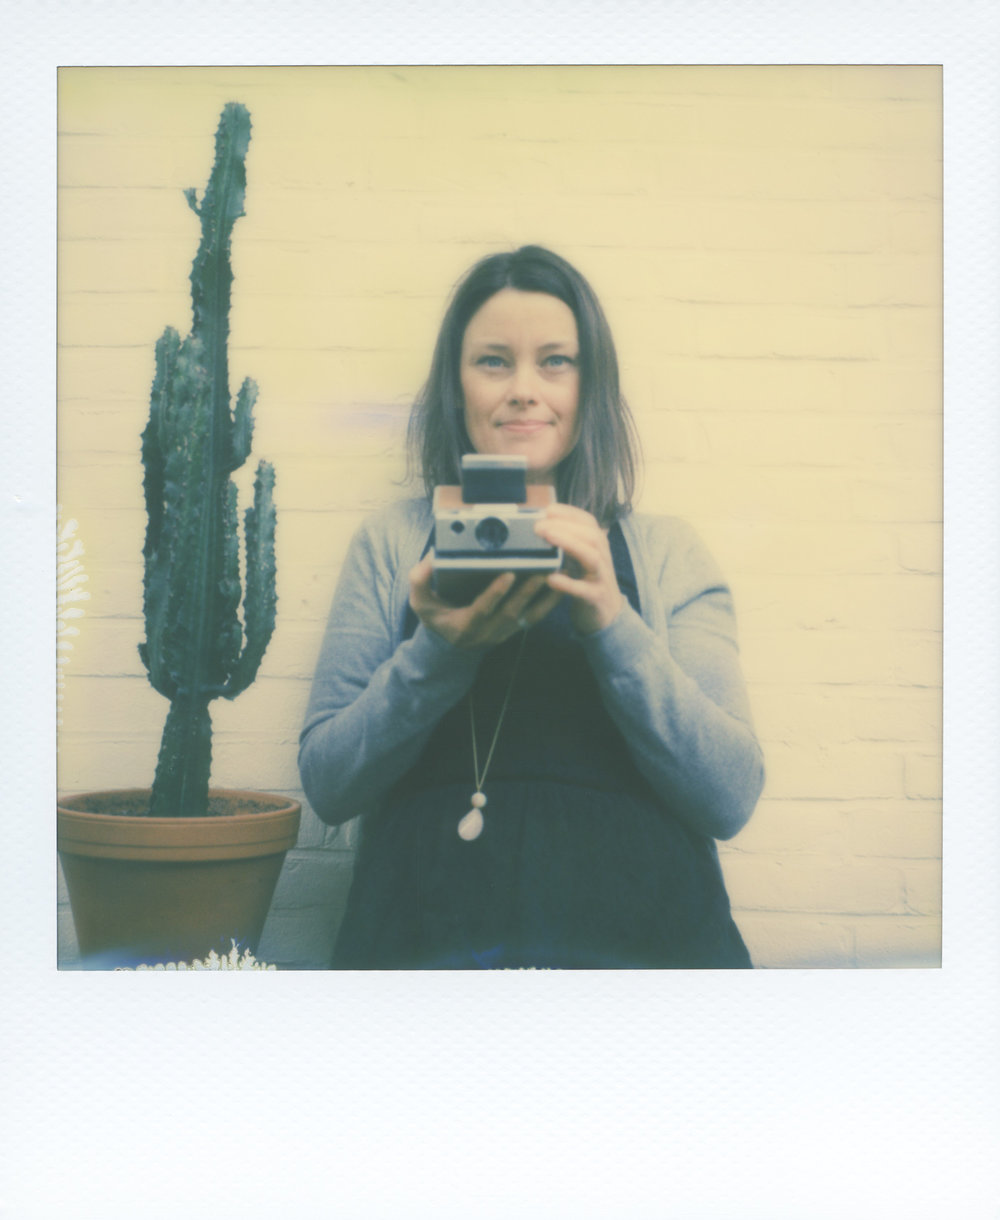 Atlanta-Amsterdam-Polaroid-Impossible-Project-self-portrait-by-On-a-hazy-morning-Amsterdam-6.jpg